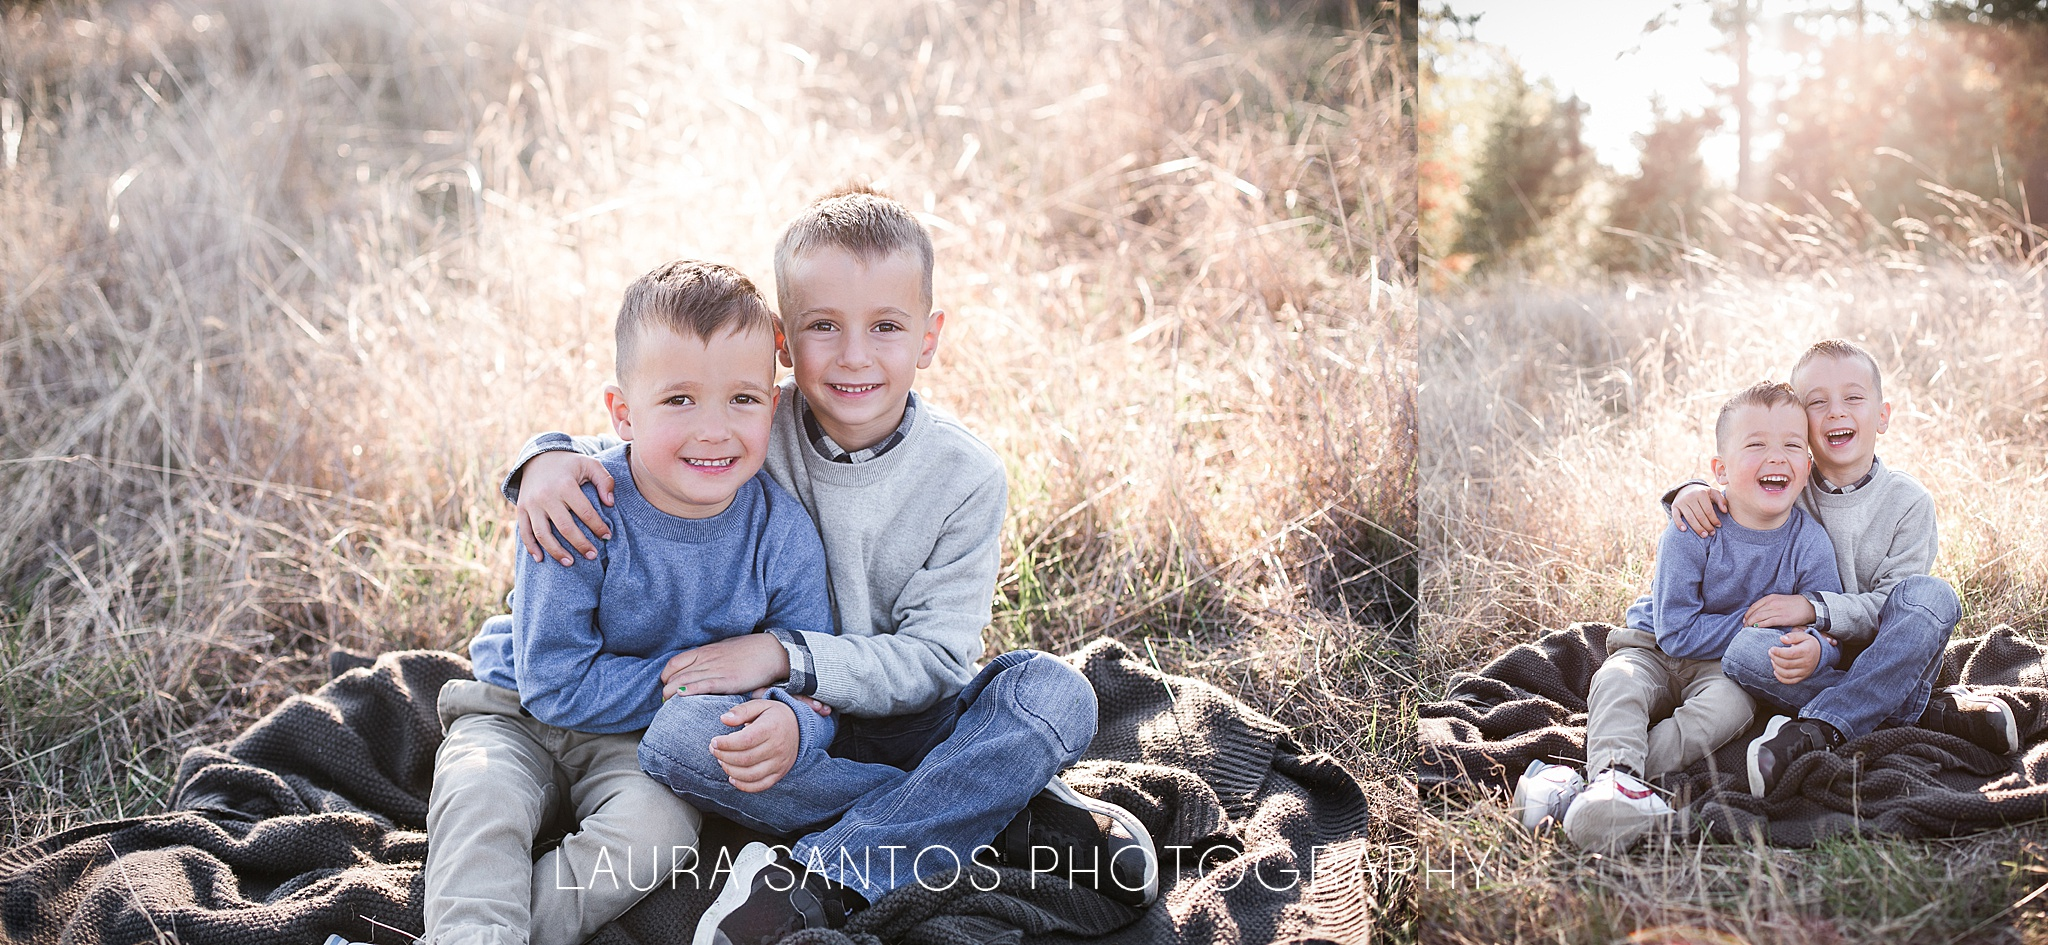 Laura Santos Photography Portland Oregon Family Photographer_0807.jpg